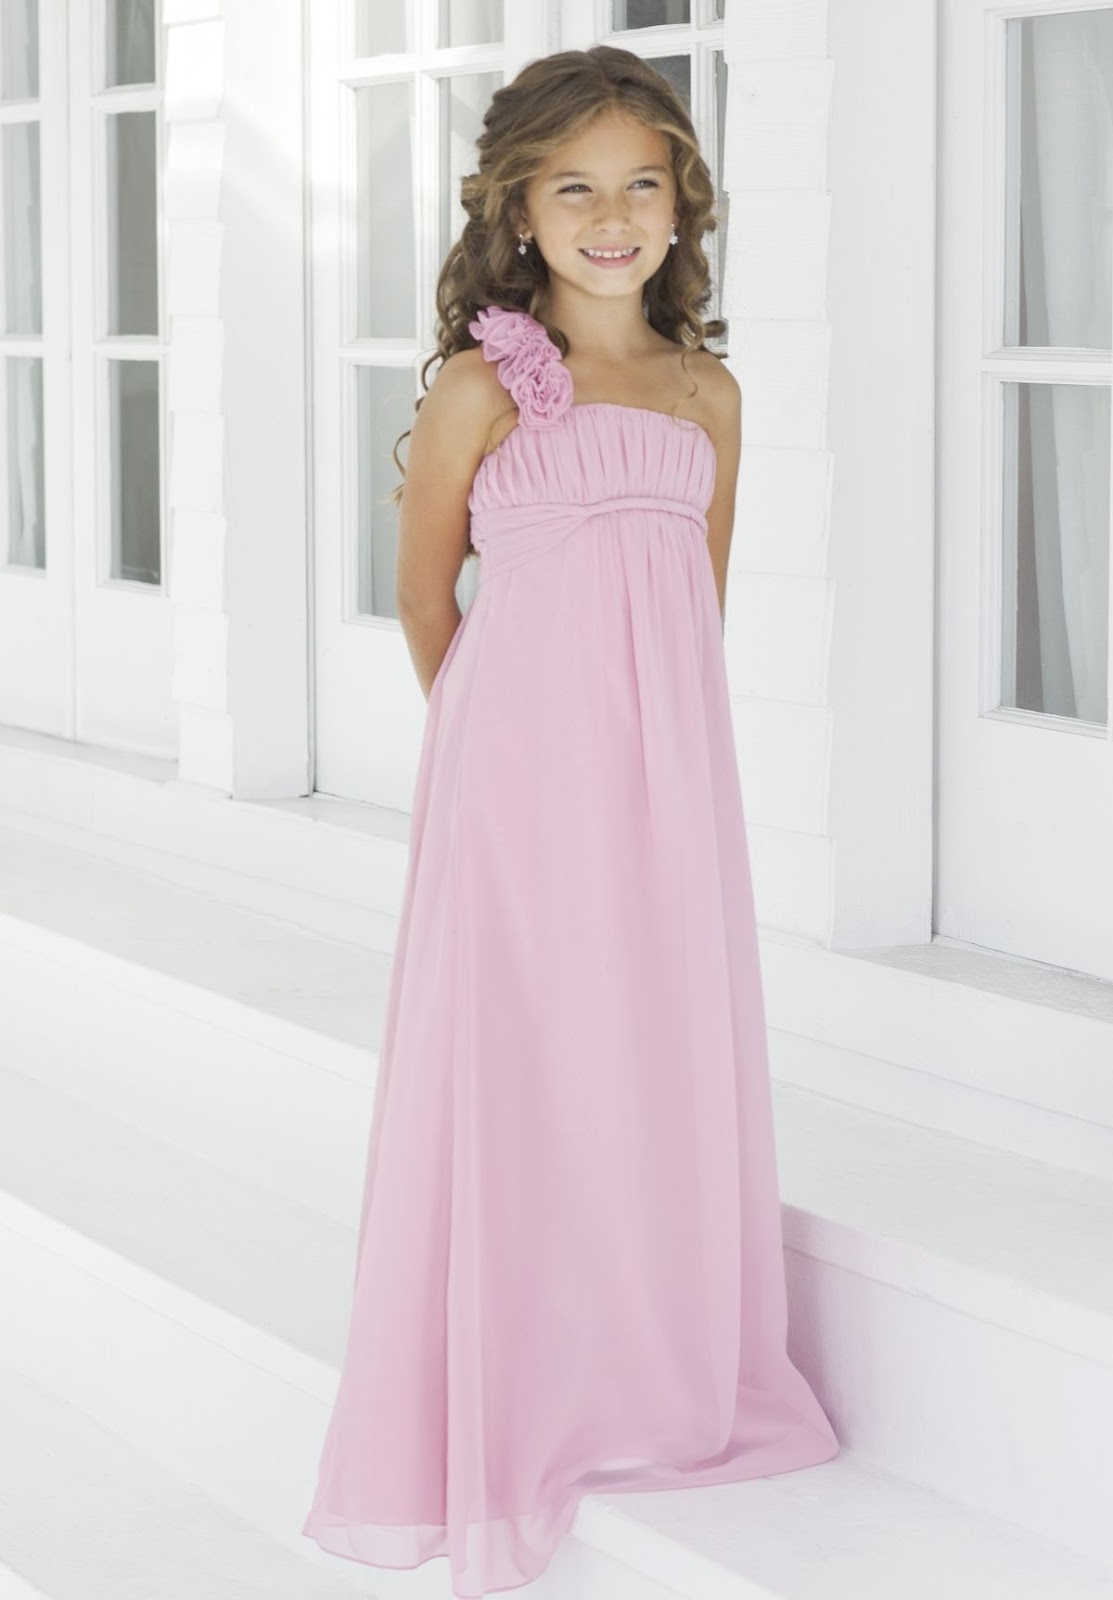 WhiteAzalea Junior Dresses: Pink Juniors Clothing for